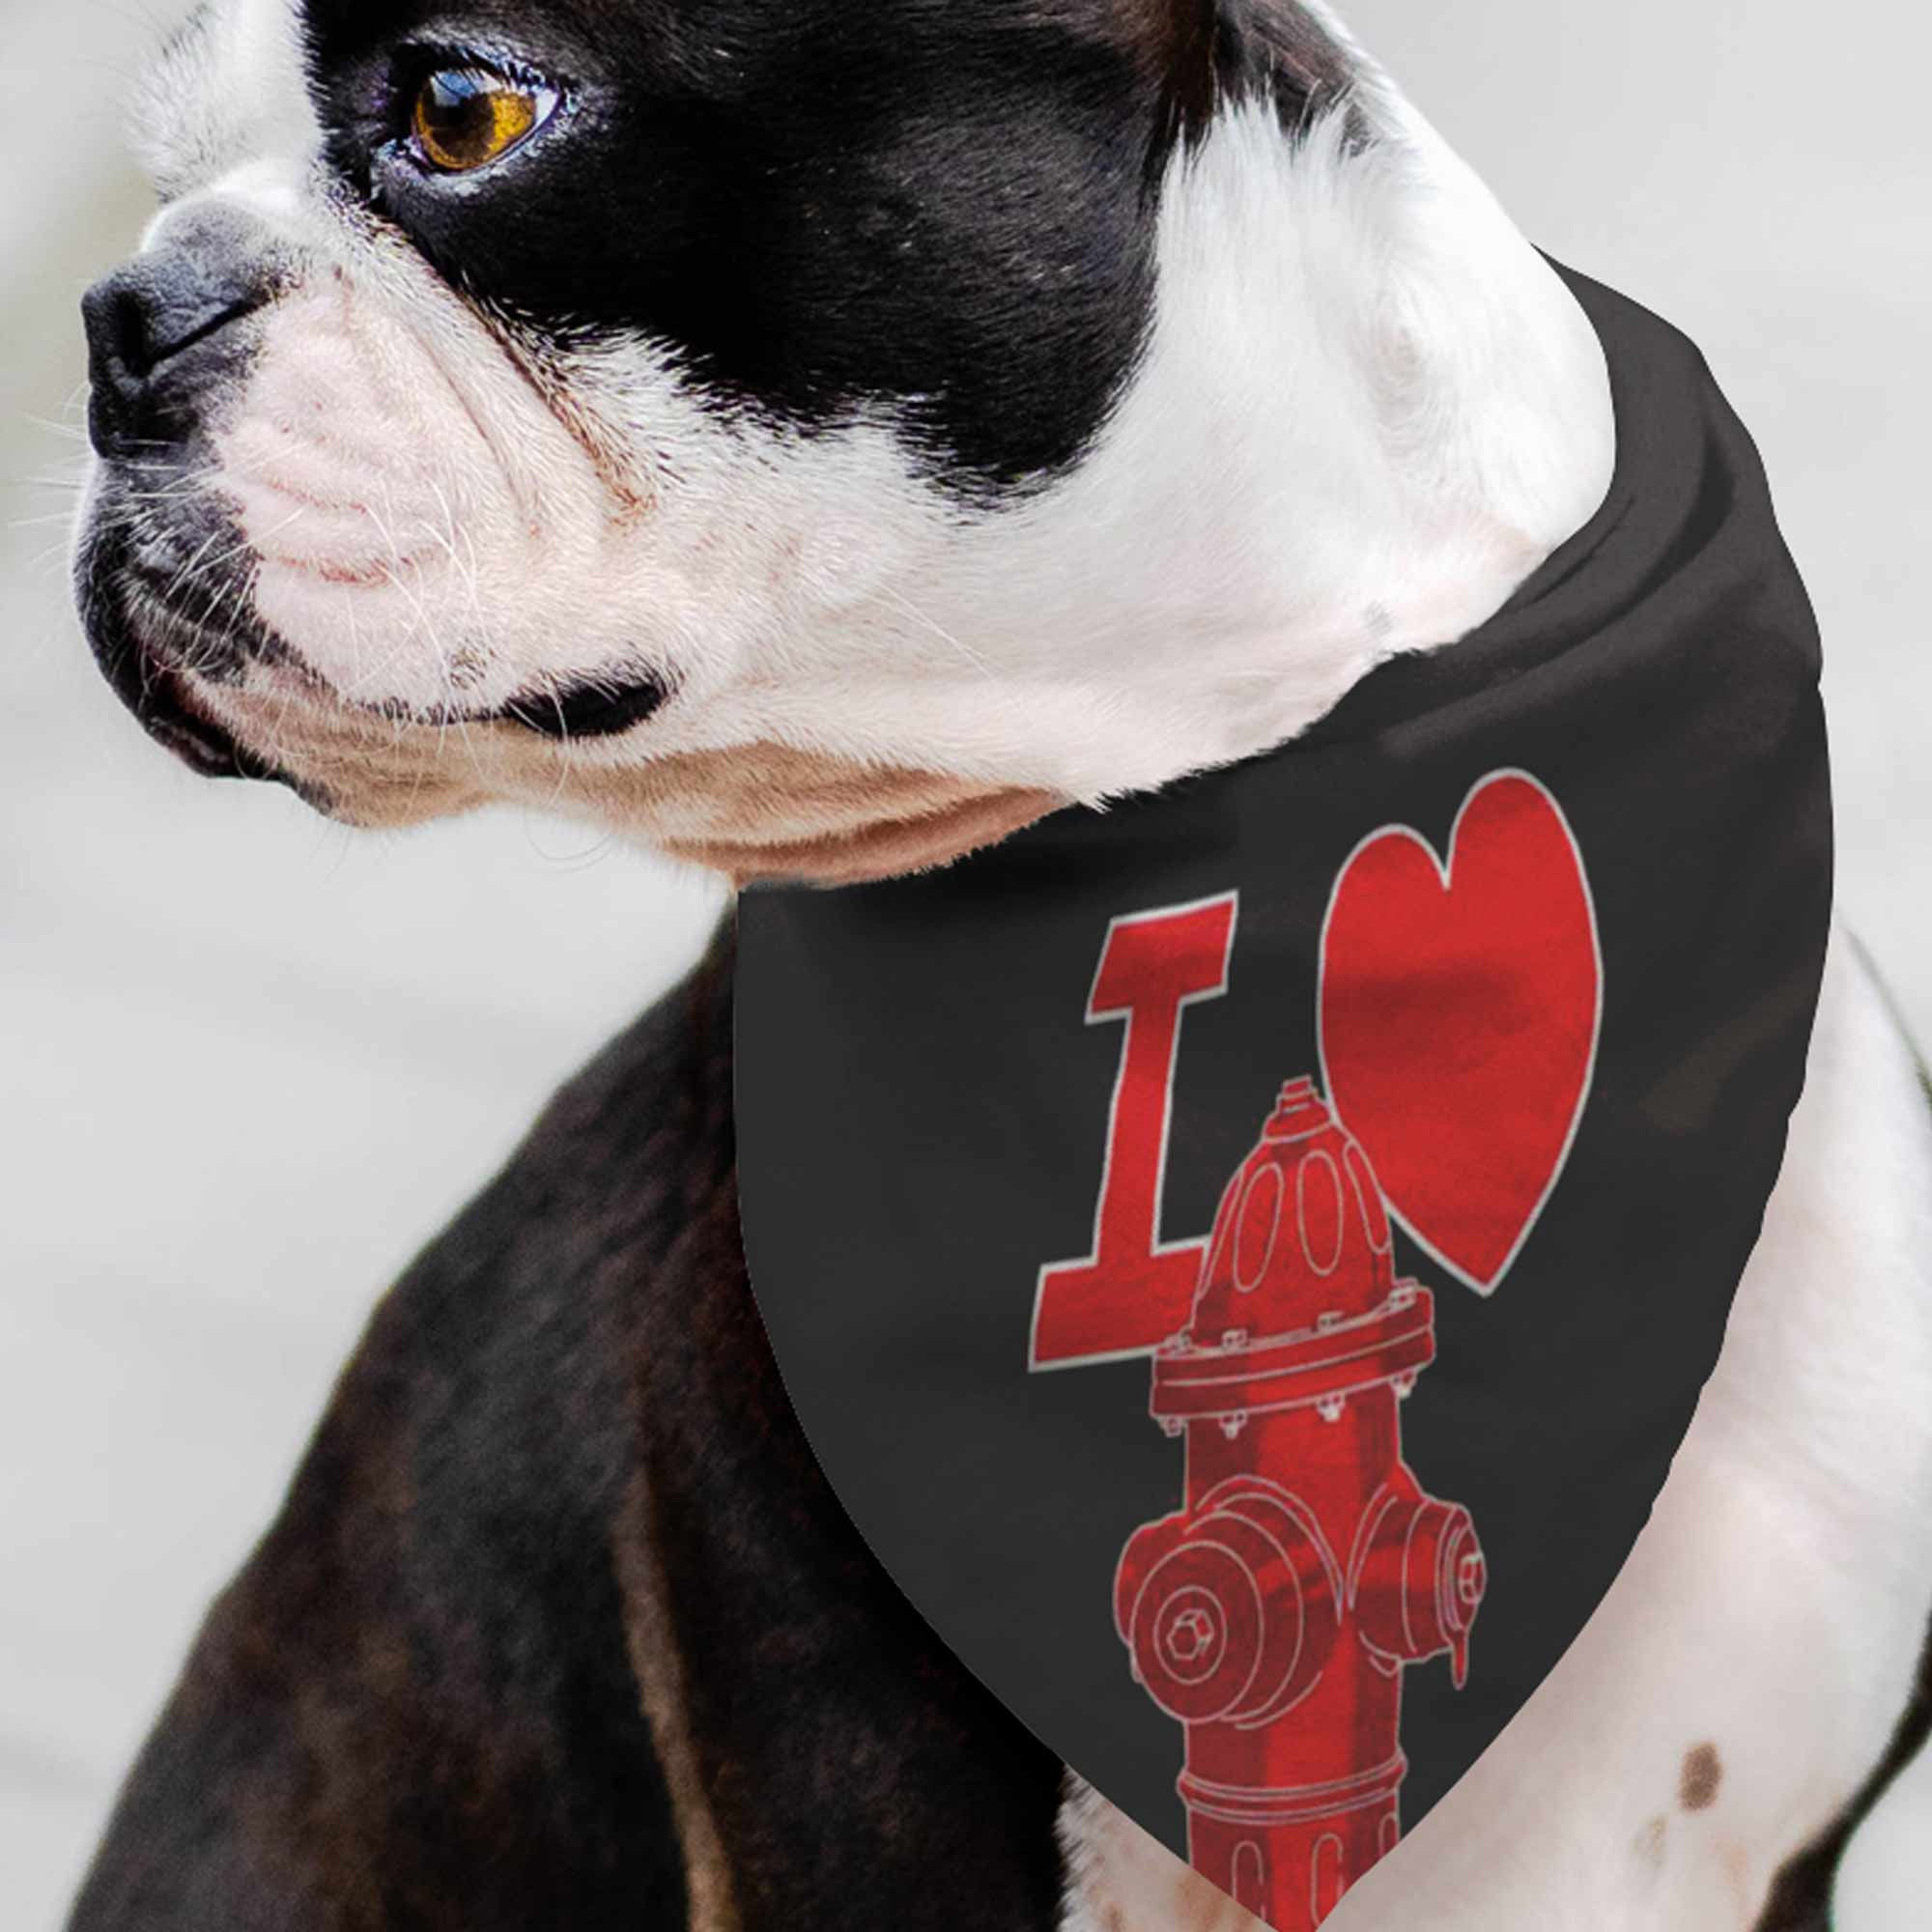 I Heart Fire hydrants Pet Bandana / Be the Cool Dog, Pet Gift, Happy Dog, Pet Fashion, Dog Wardrobe, Handkerchief, Dog Walk